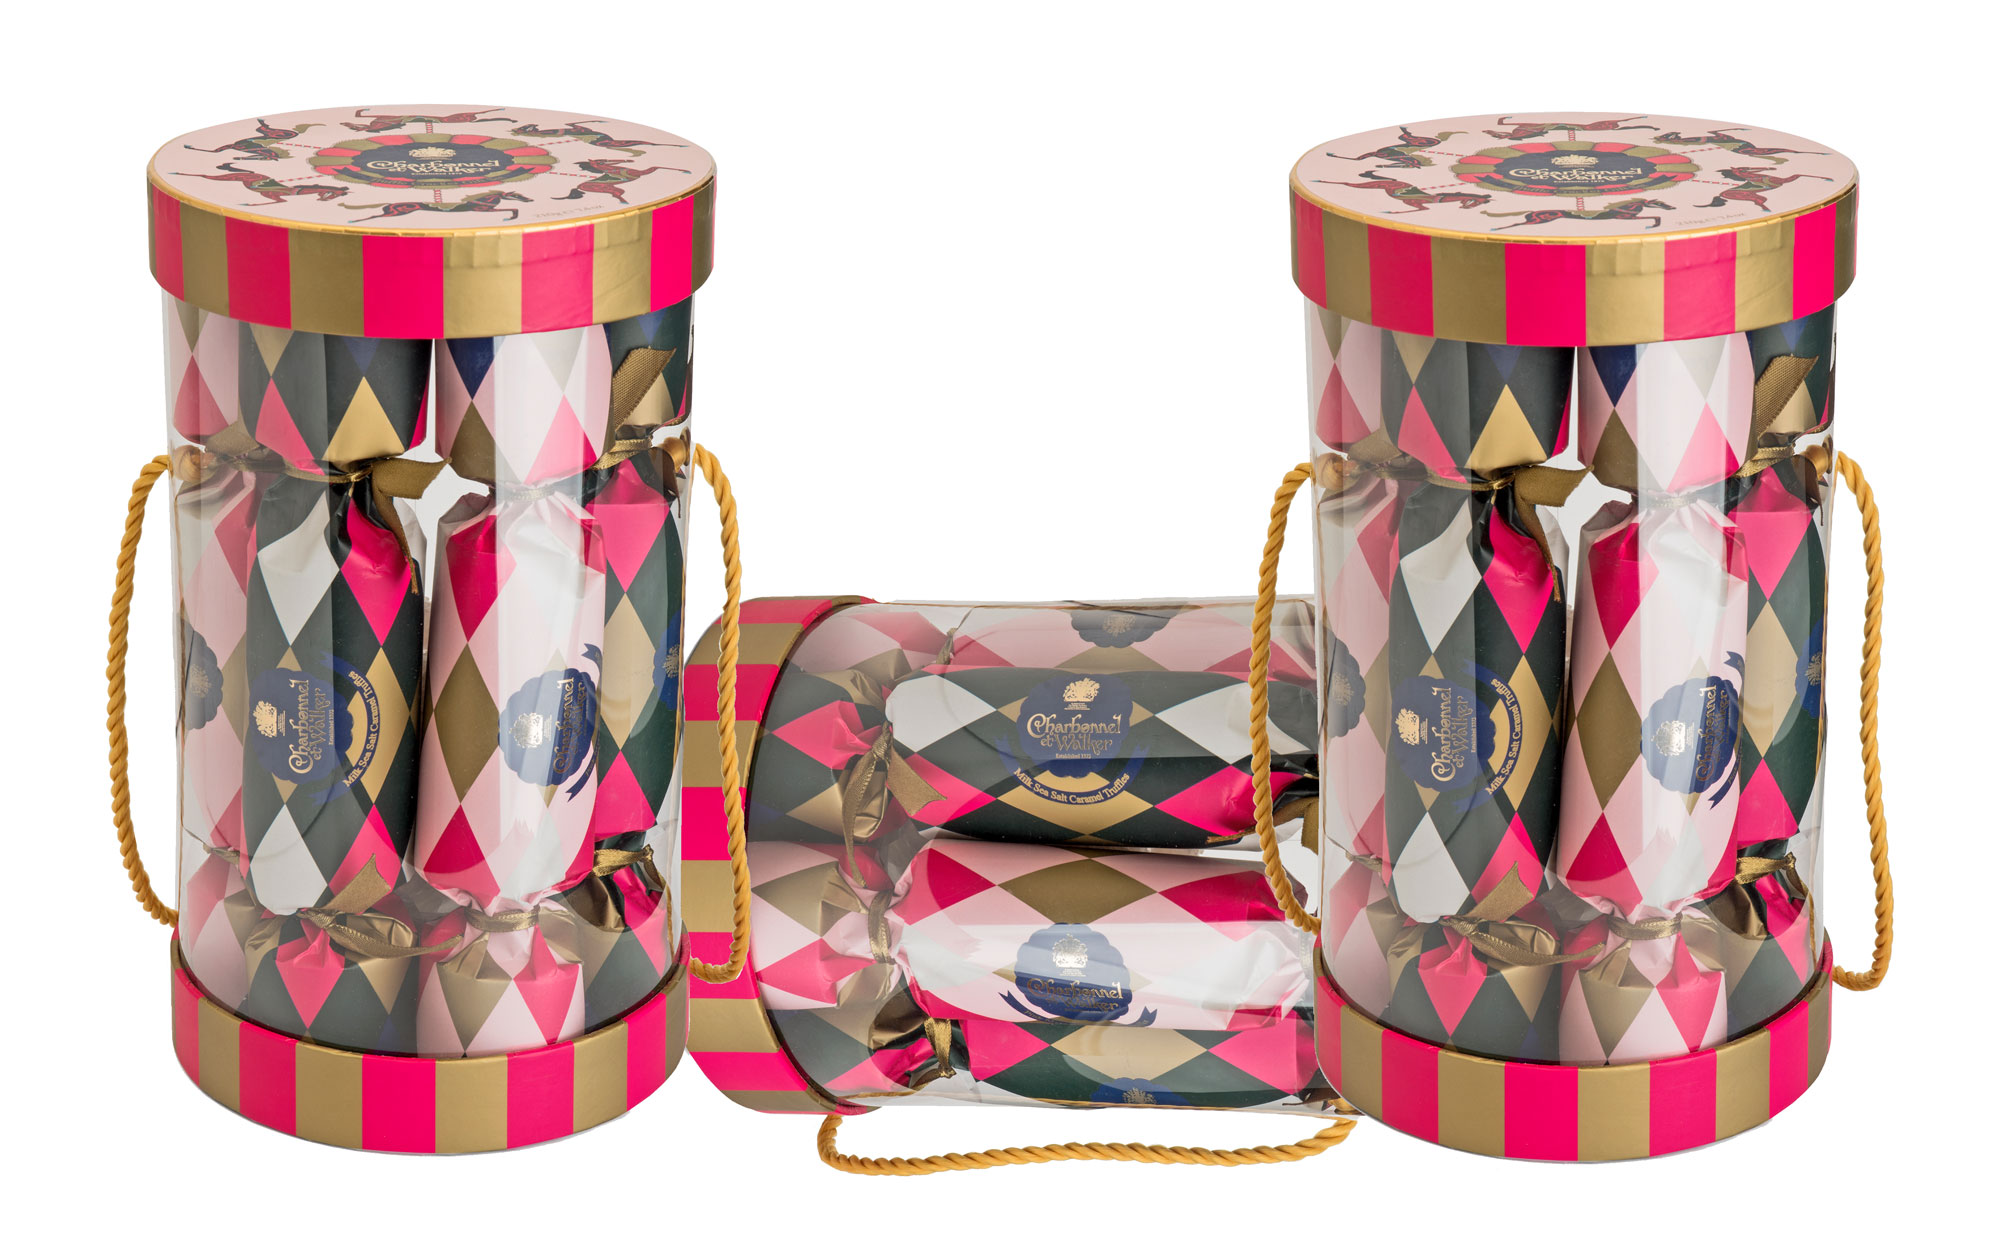 Charbonnel & Walker Christmas Cracker Drum